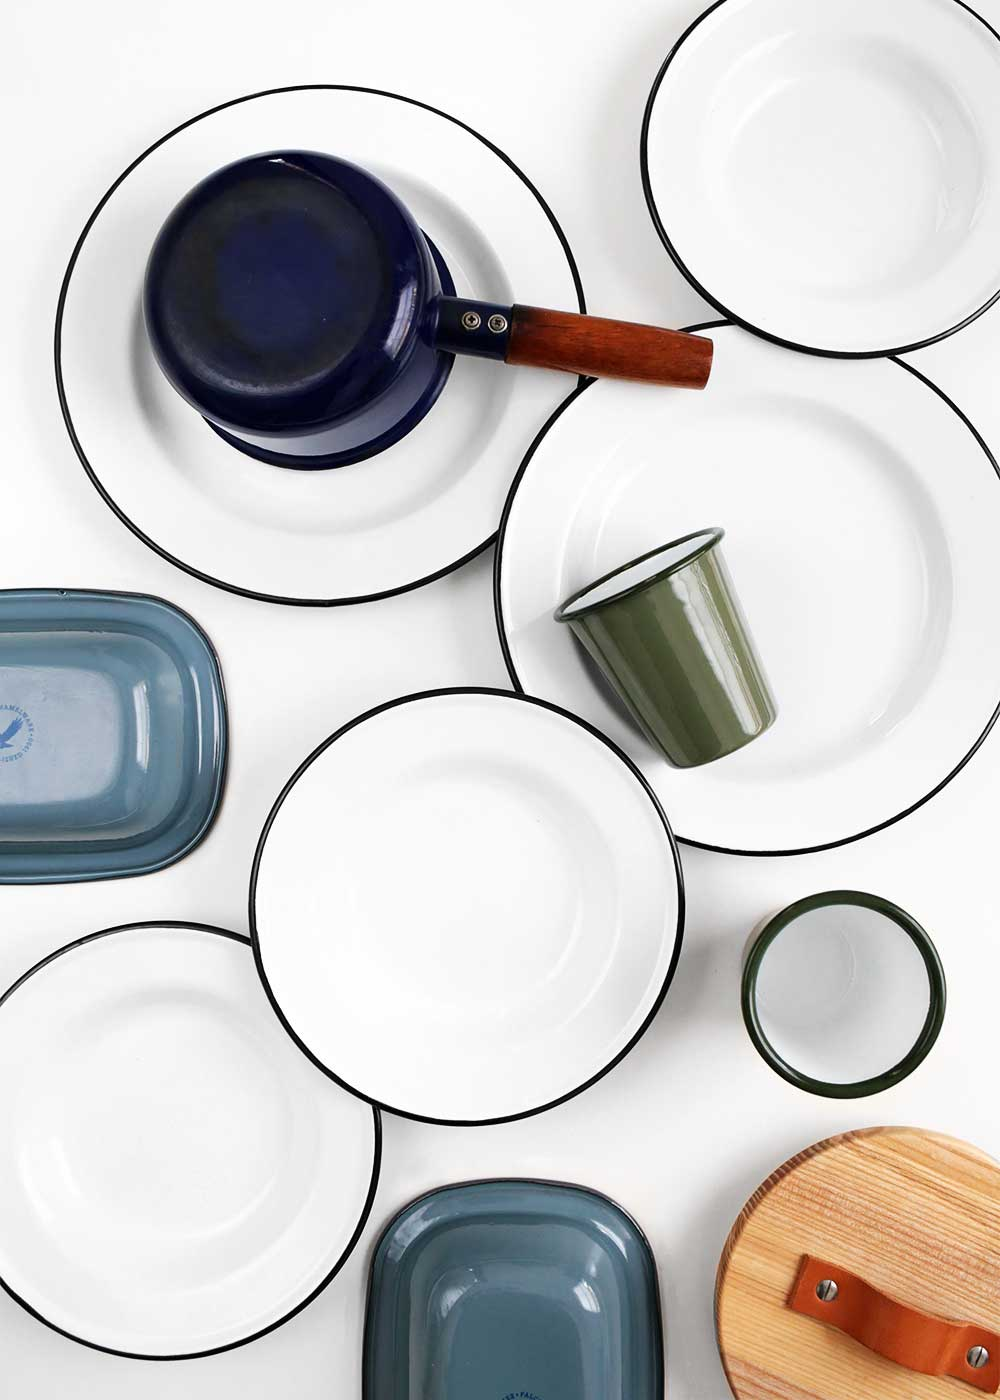 My favorite enamelware from The Fauxmartha